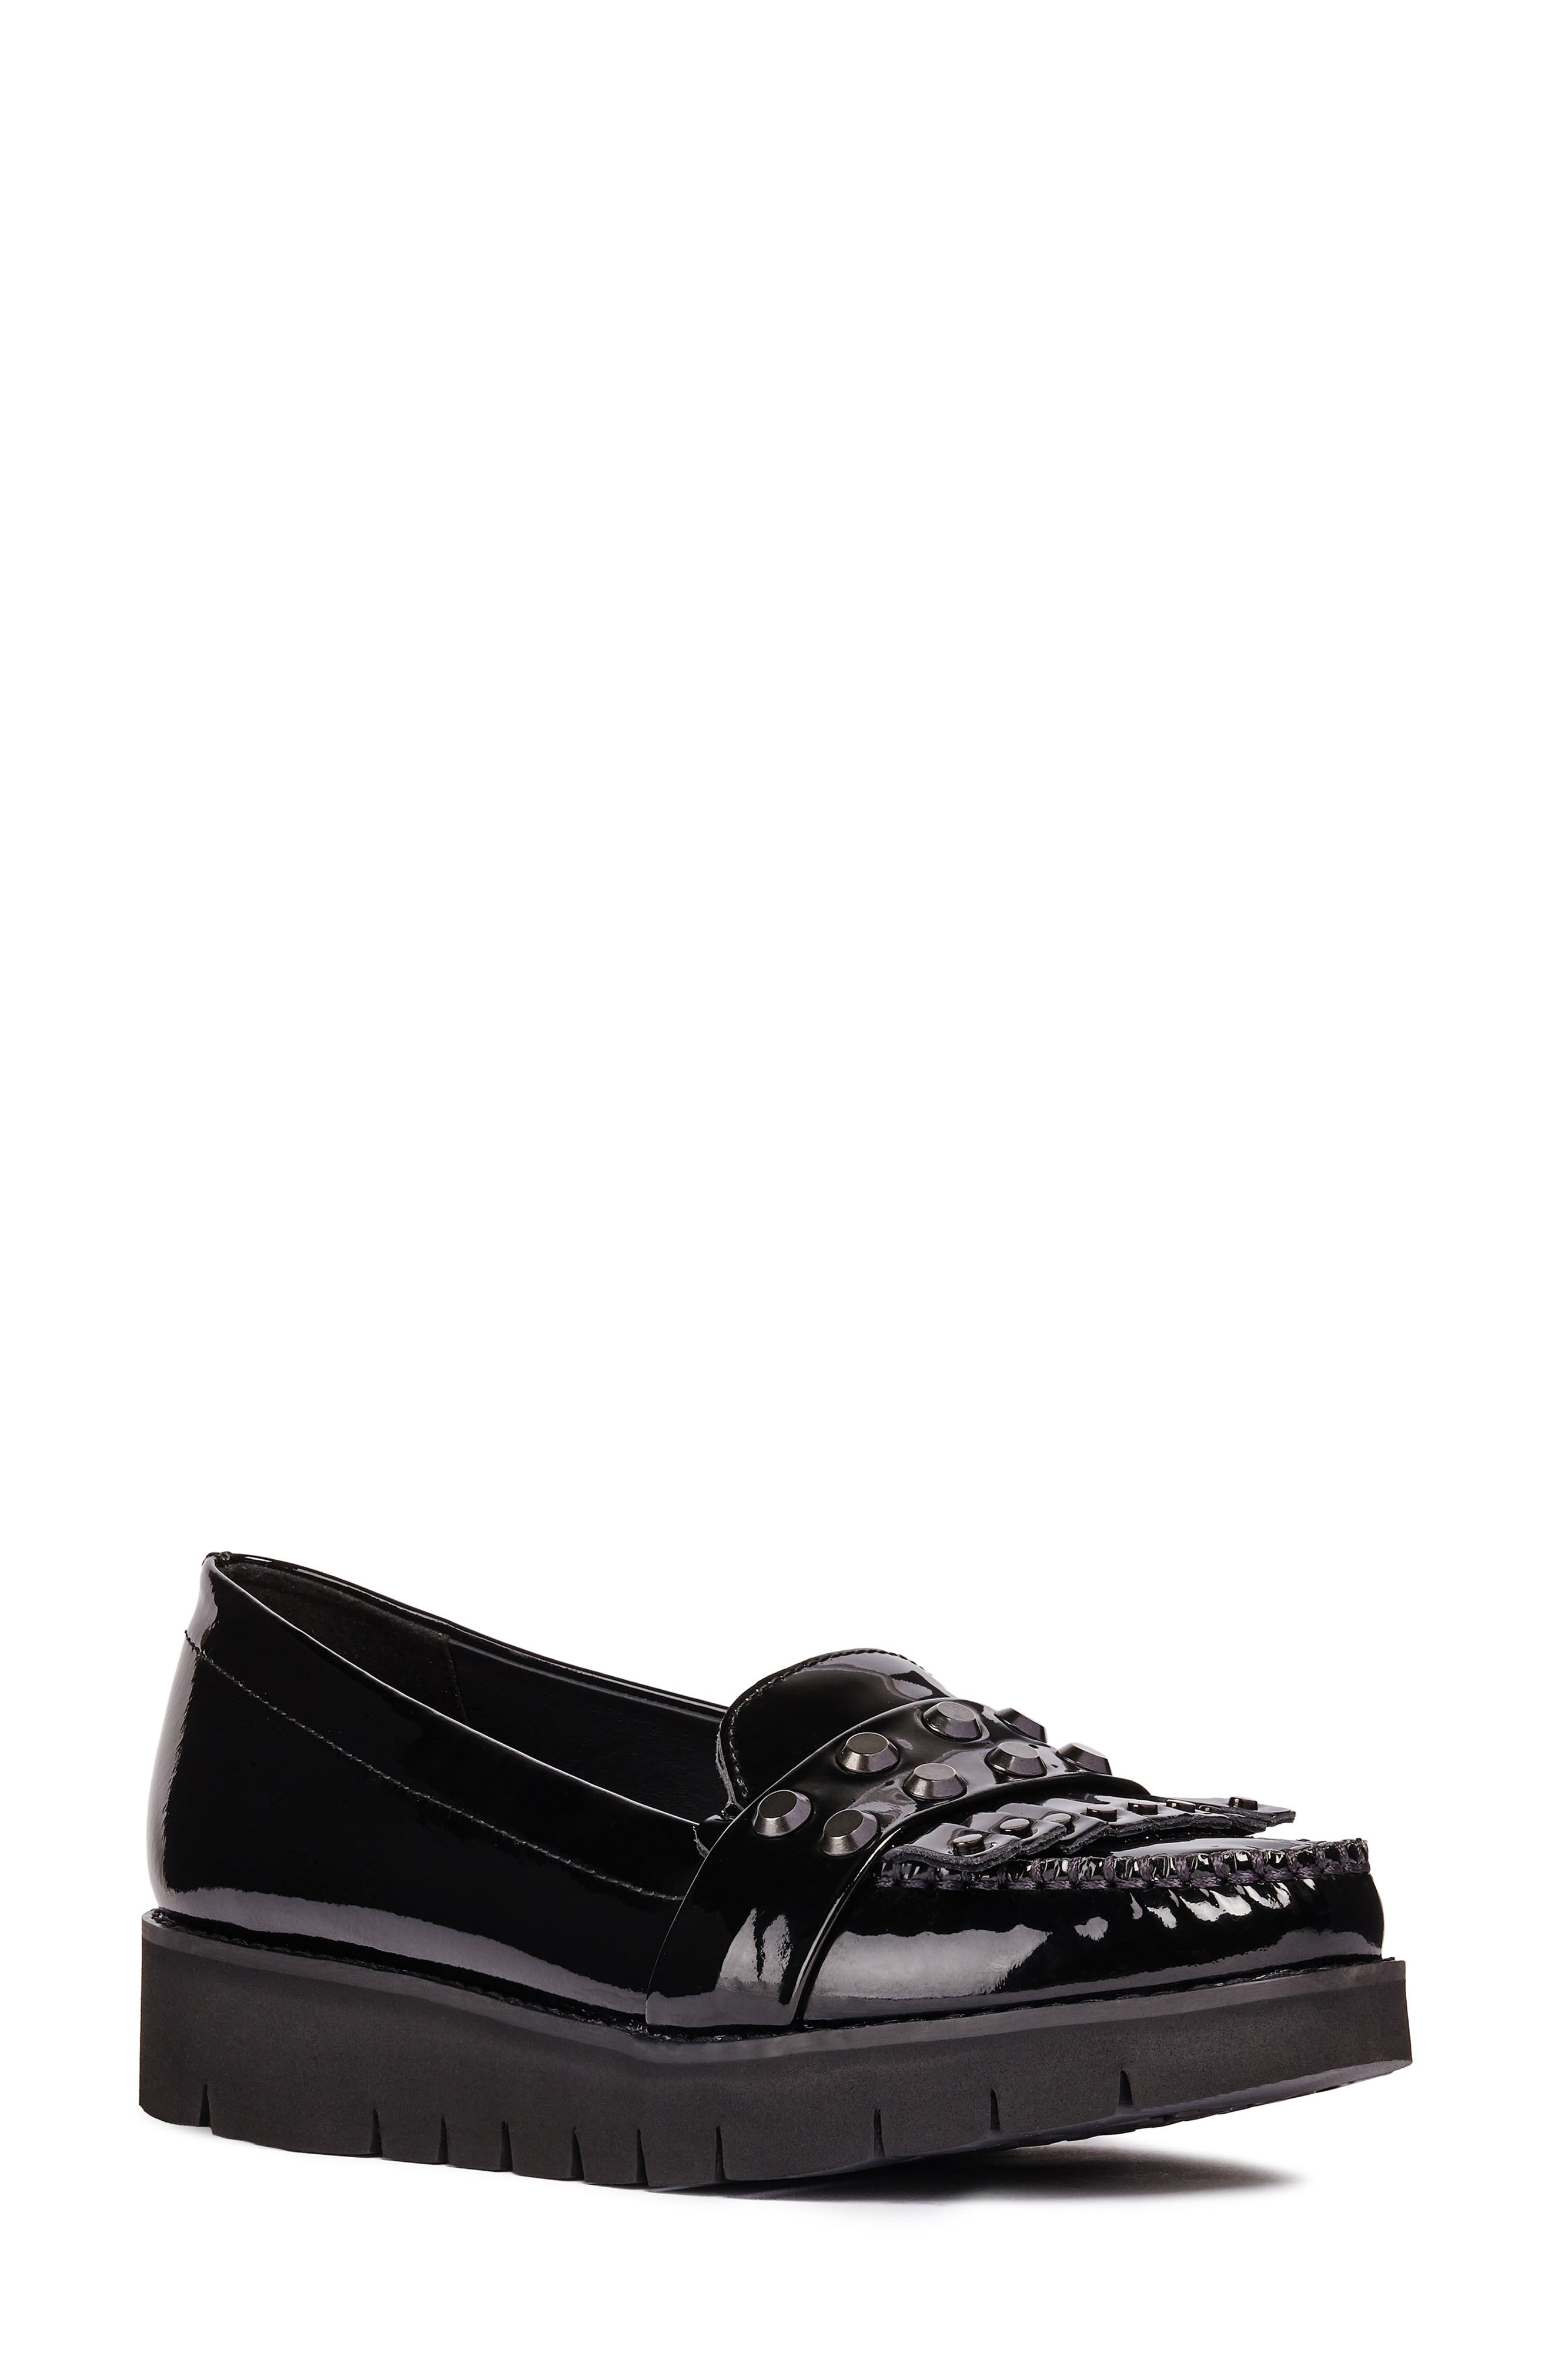 Blenda Studded Kiltie Loafer,                             Main thumbnail 1, color,                             BLACK LEATHER